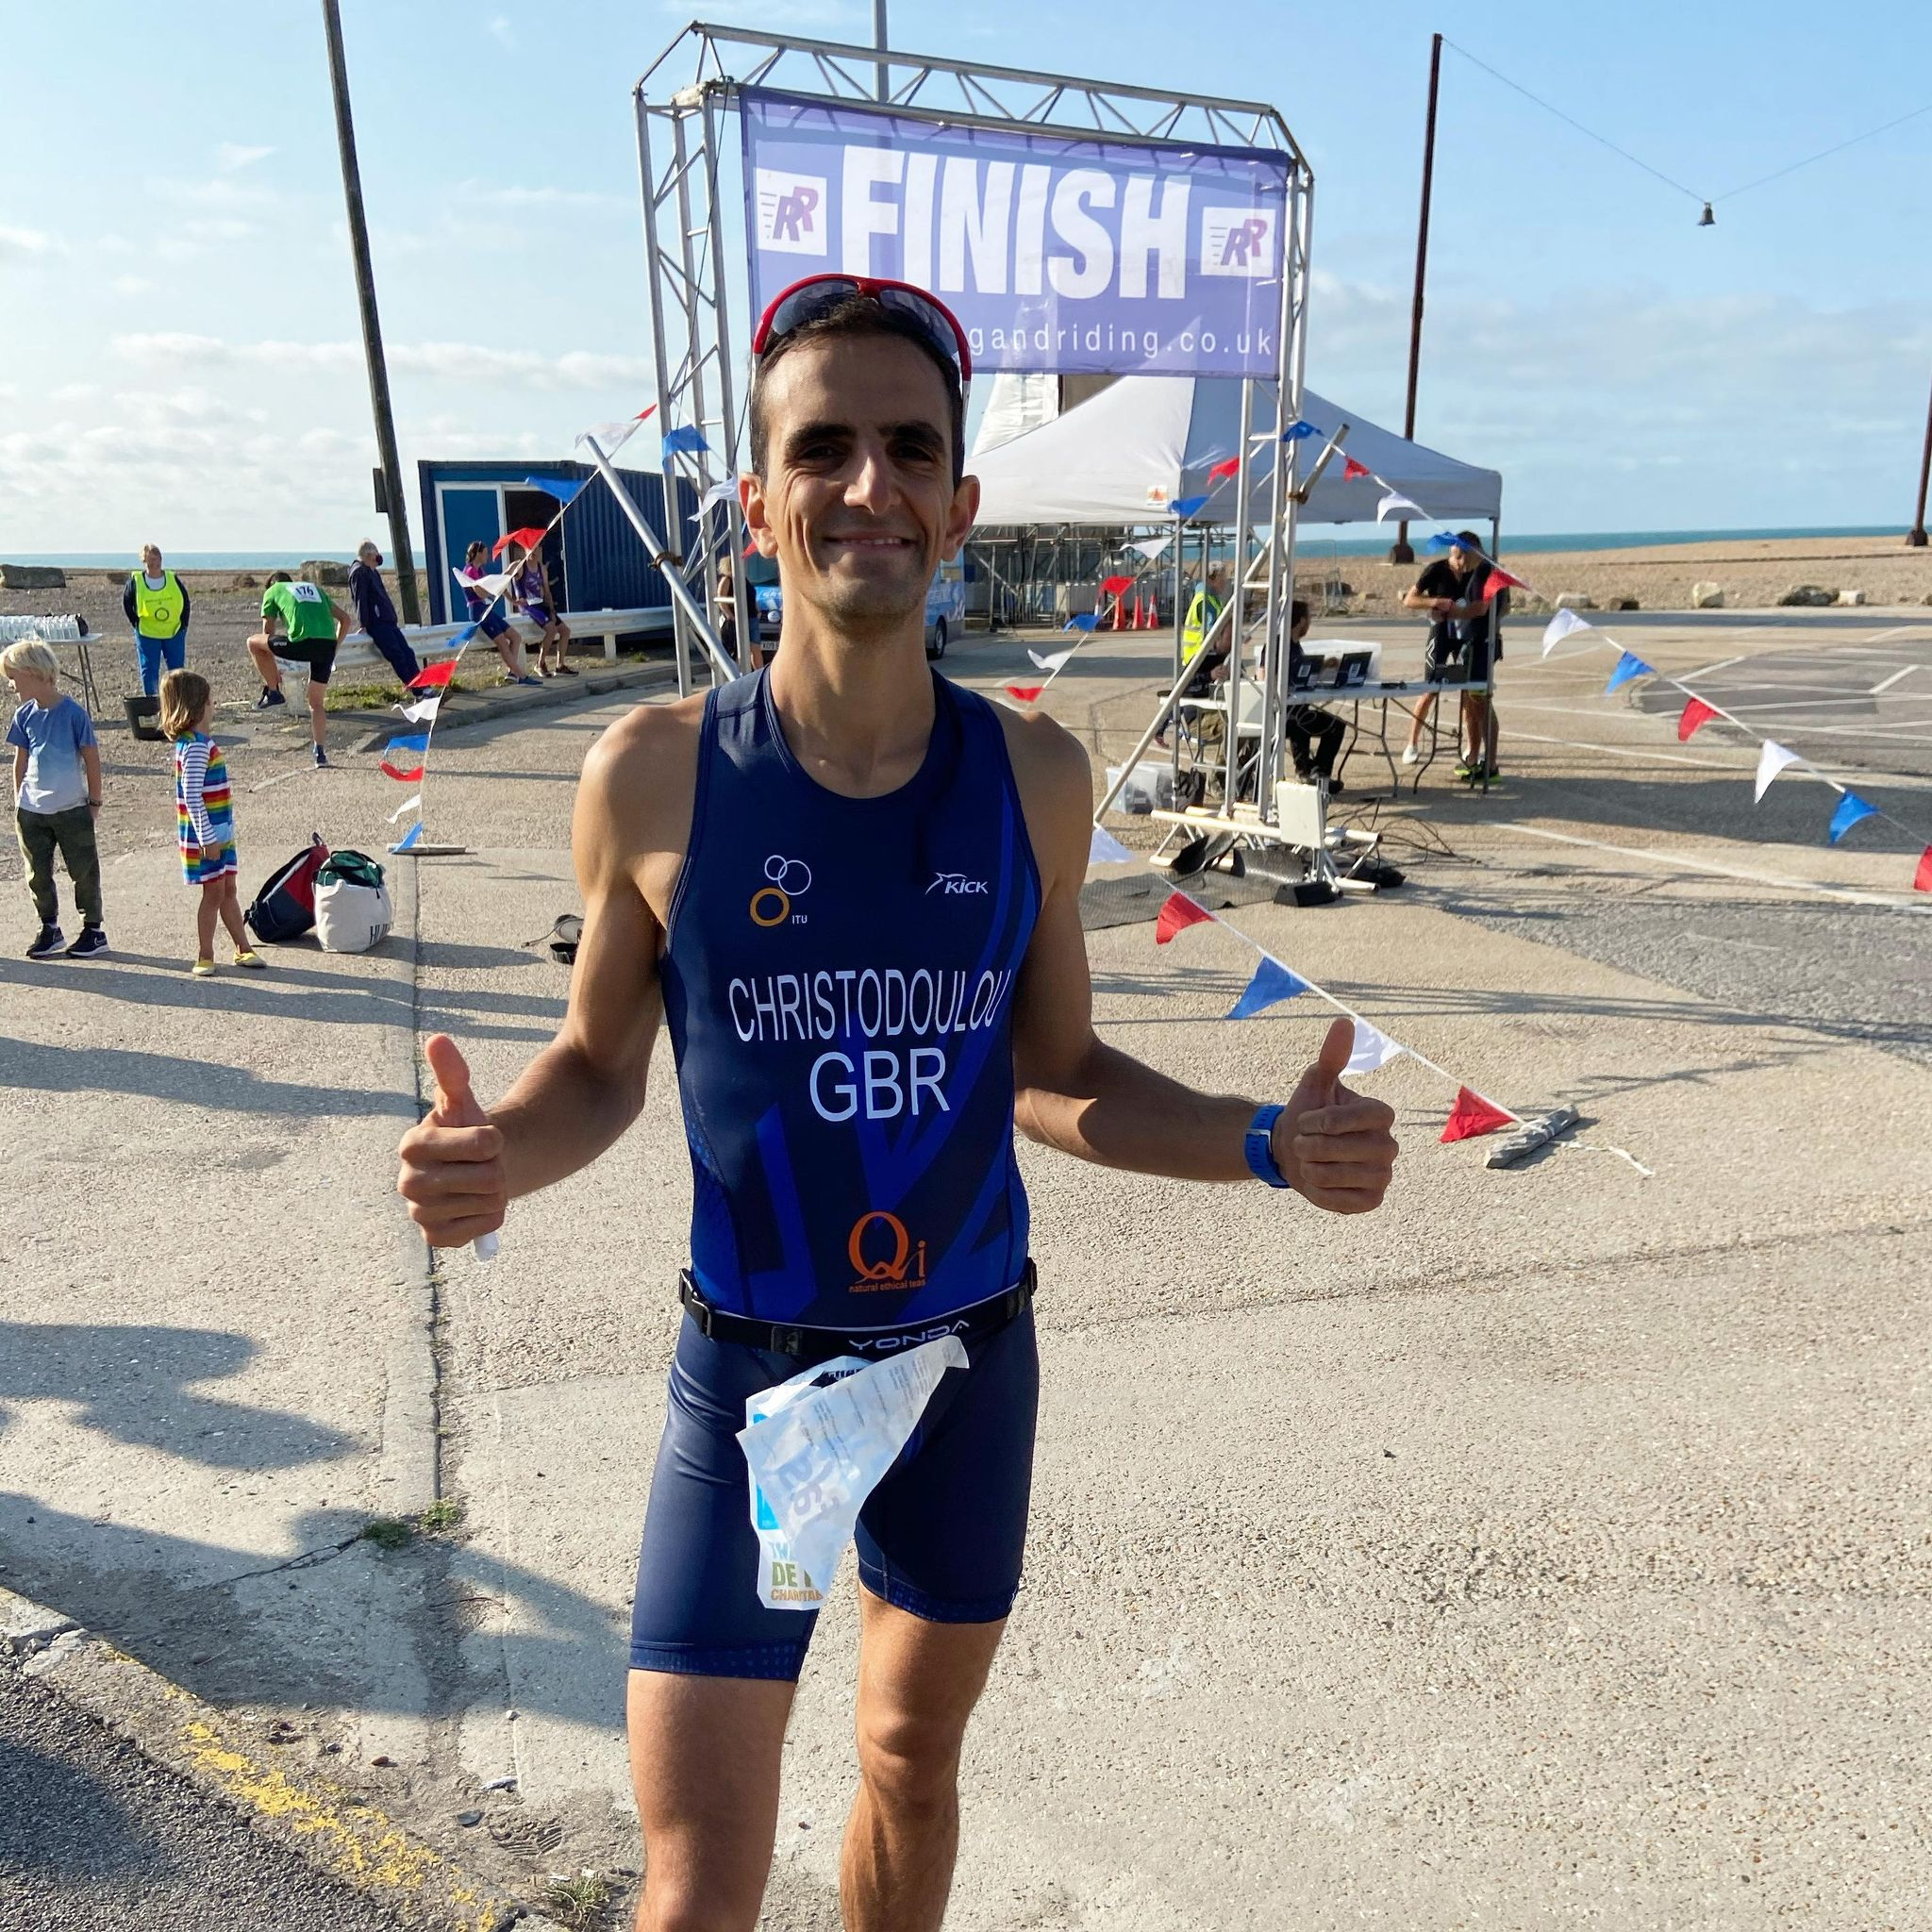 Yiannis Christodoulou Sets Course Record at Channel Sprint Triathlon